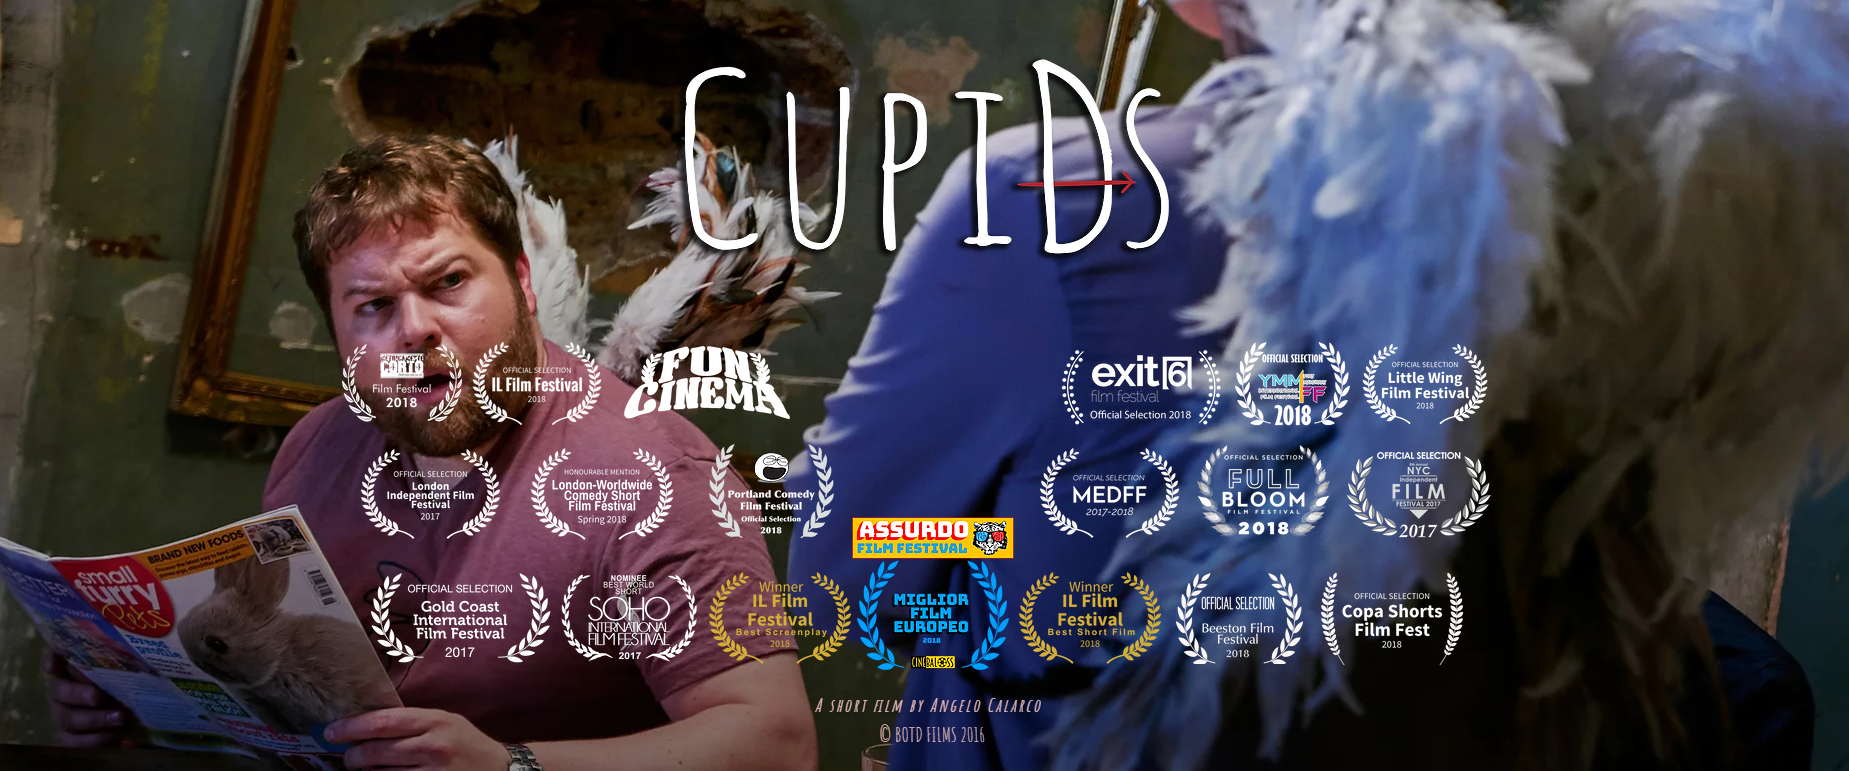 Cupids title picture 3.png